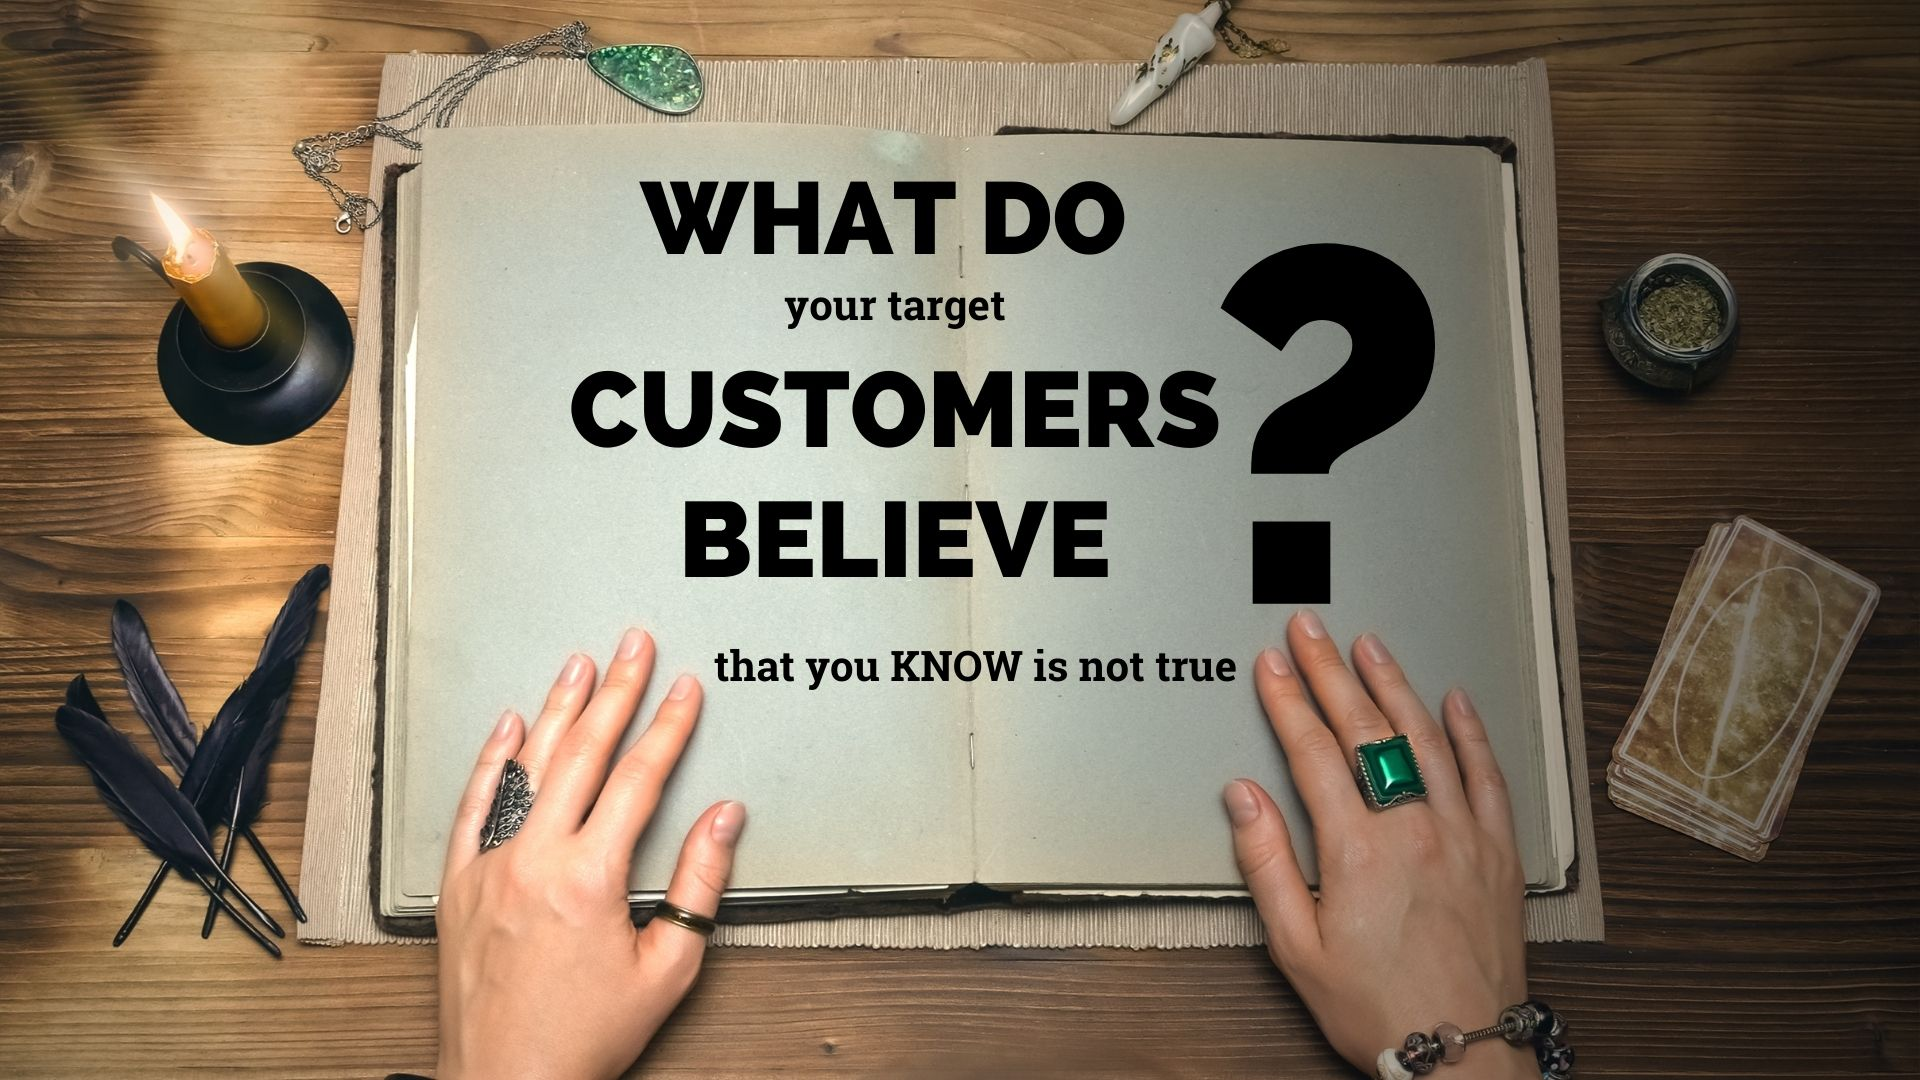 What do your customers believe that you know is not true?